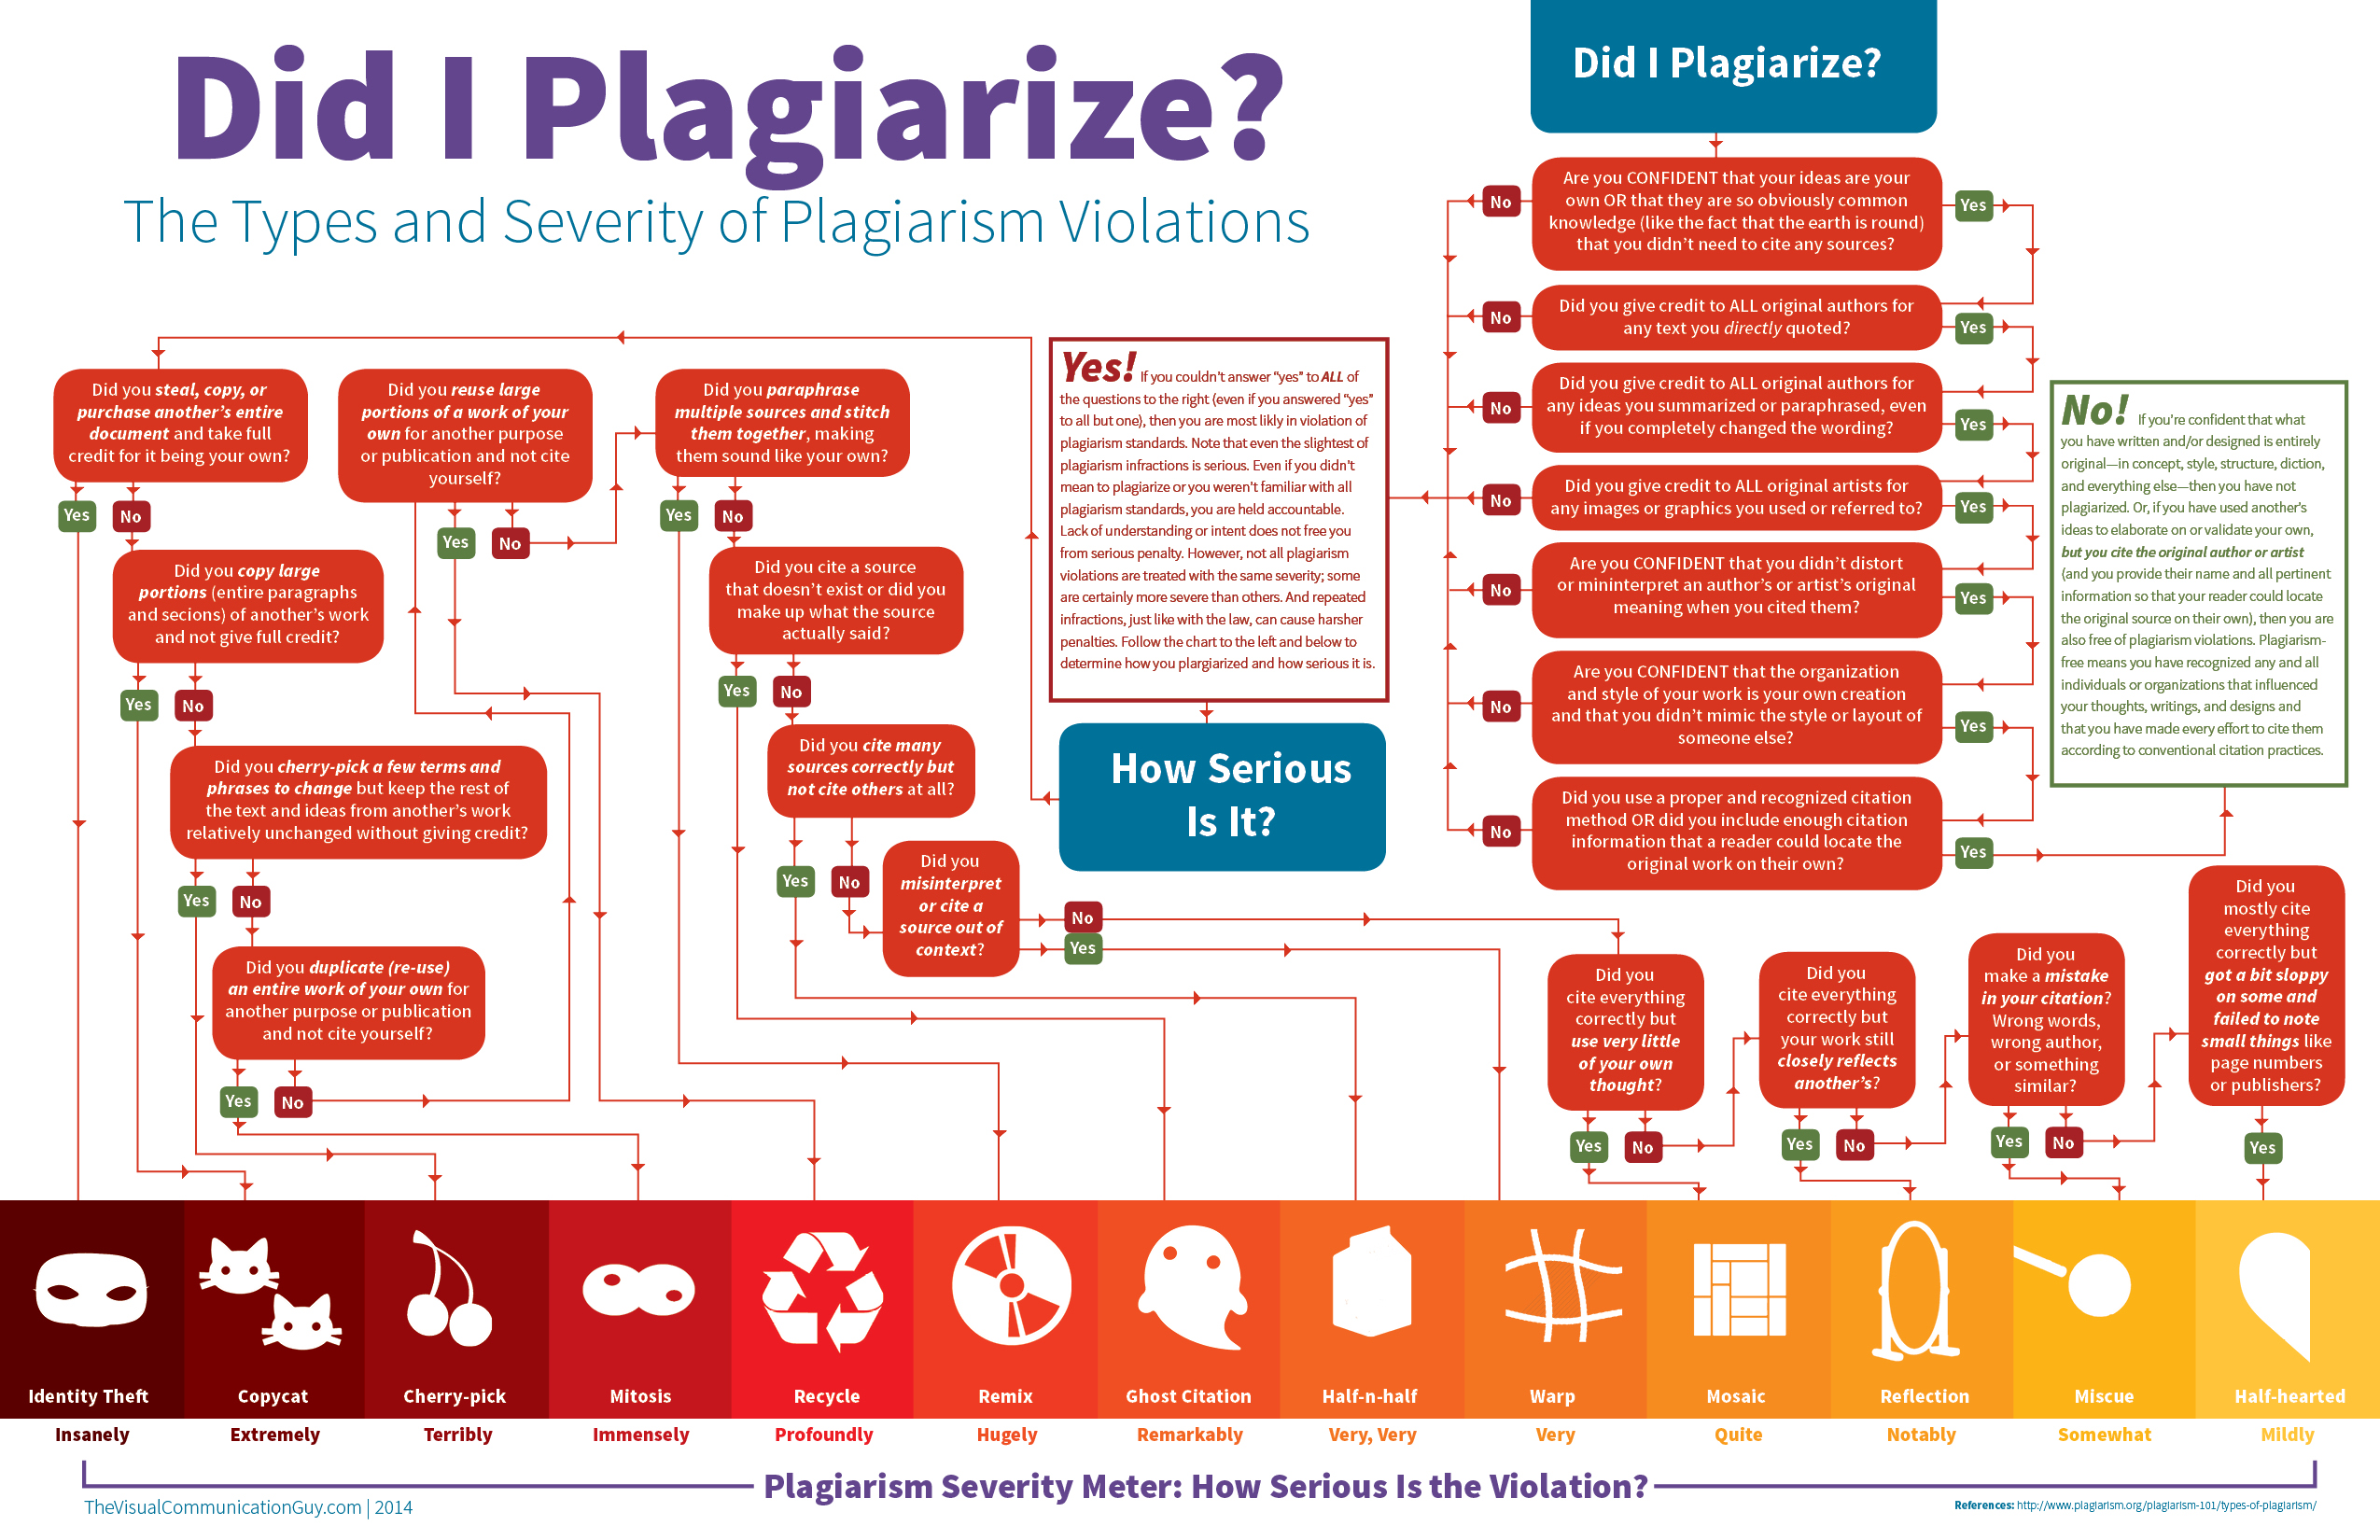 Could I get done for plagerism?